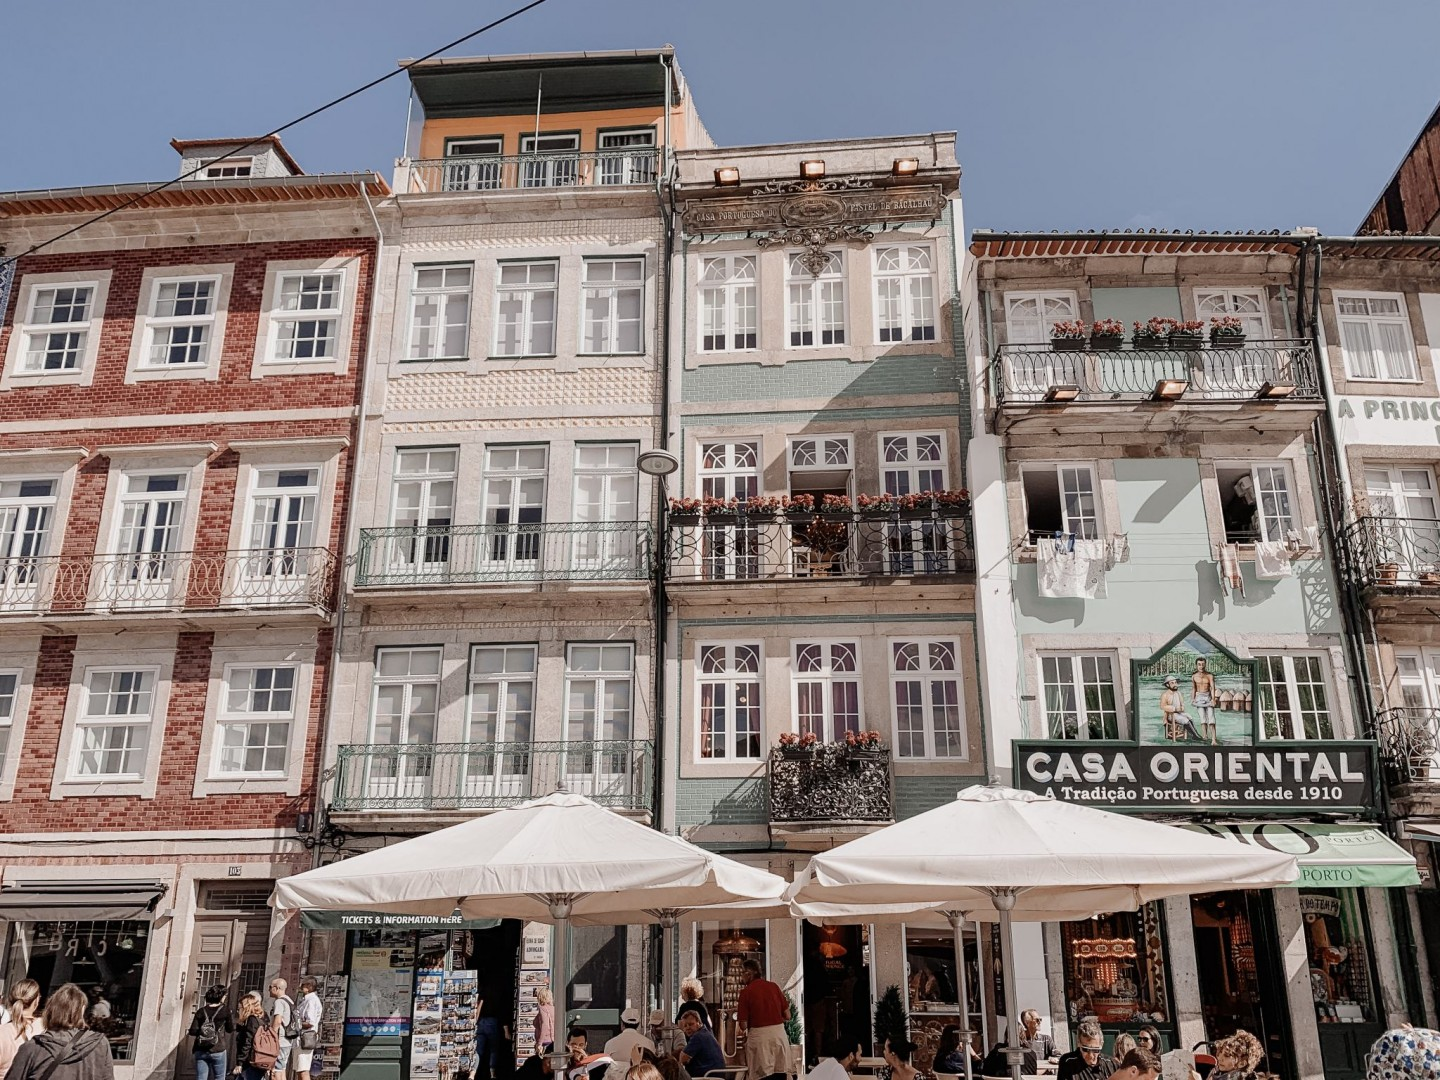 Lifestyle blogger Mollie Moore shares a Porto travel guide | A Porto Portugal Travel Guide by popular Great Britain international travel blogger, Mollie Moore: image of different colored building fronts, cafe tables with tan umbrellas, and Casa Oriental.